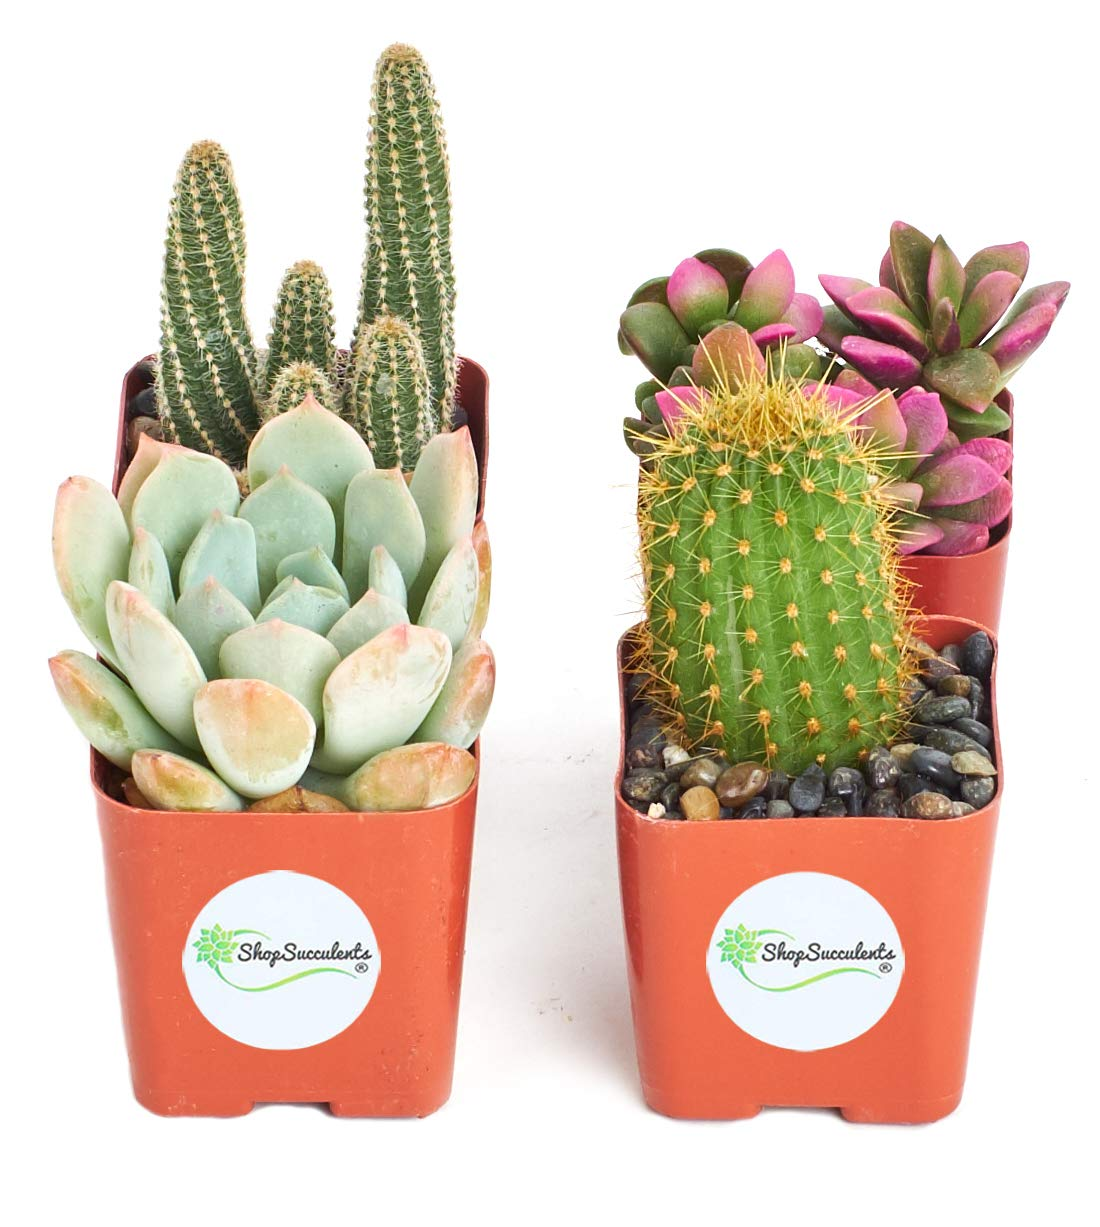 Shop Succulents | Cactus & Succulent Collection of Live Plants, Hand Selected Variety Pack of Cacti and Mini Succulents | Collection of 4 in 2'' pots by Shop Succulents